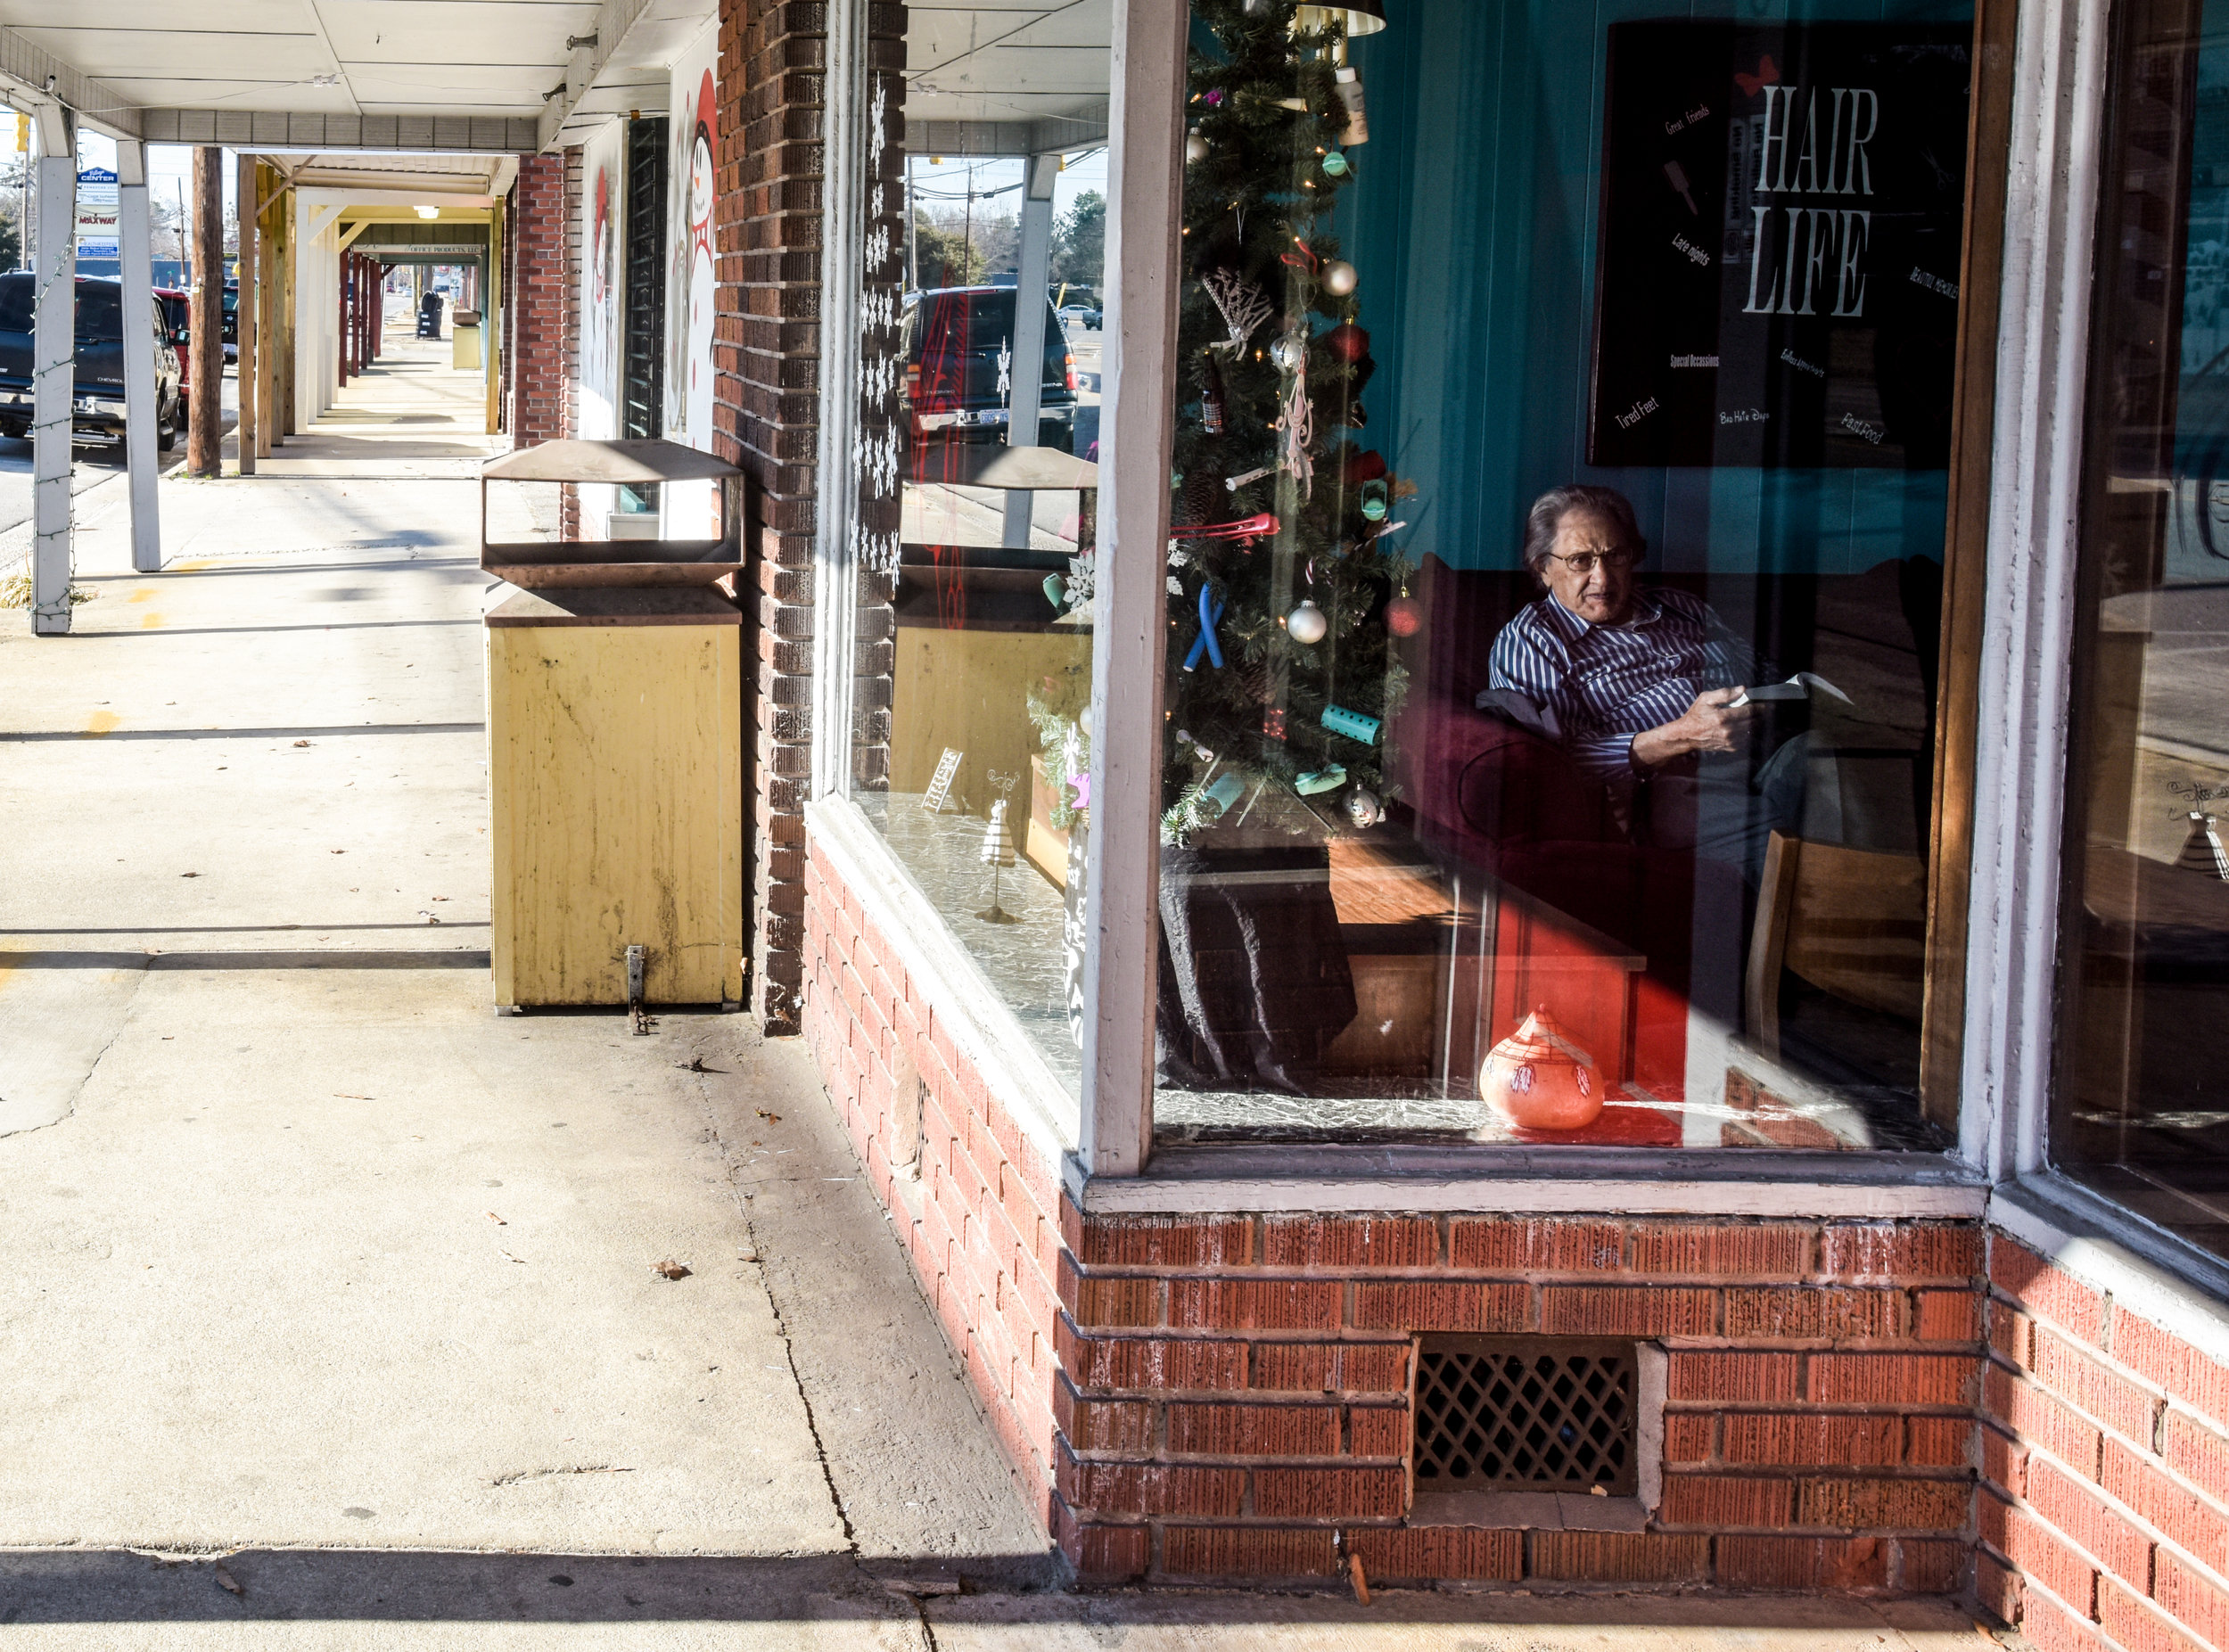 Third Street in Pembroke is home to a row of small businesses. Robeson County hopes the Atlantic Coast Pipeline will attract larger manufacturing companies and with them, jobs.